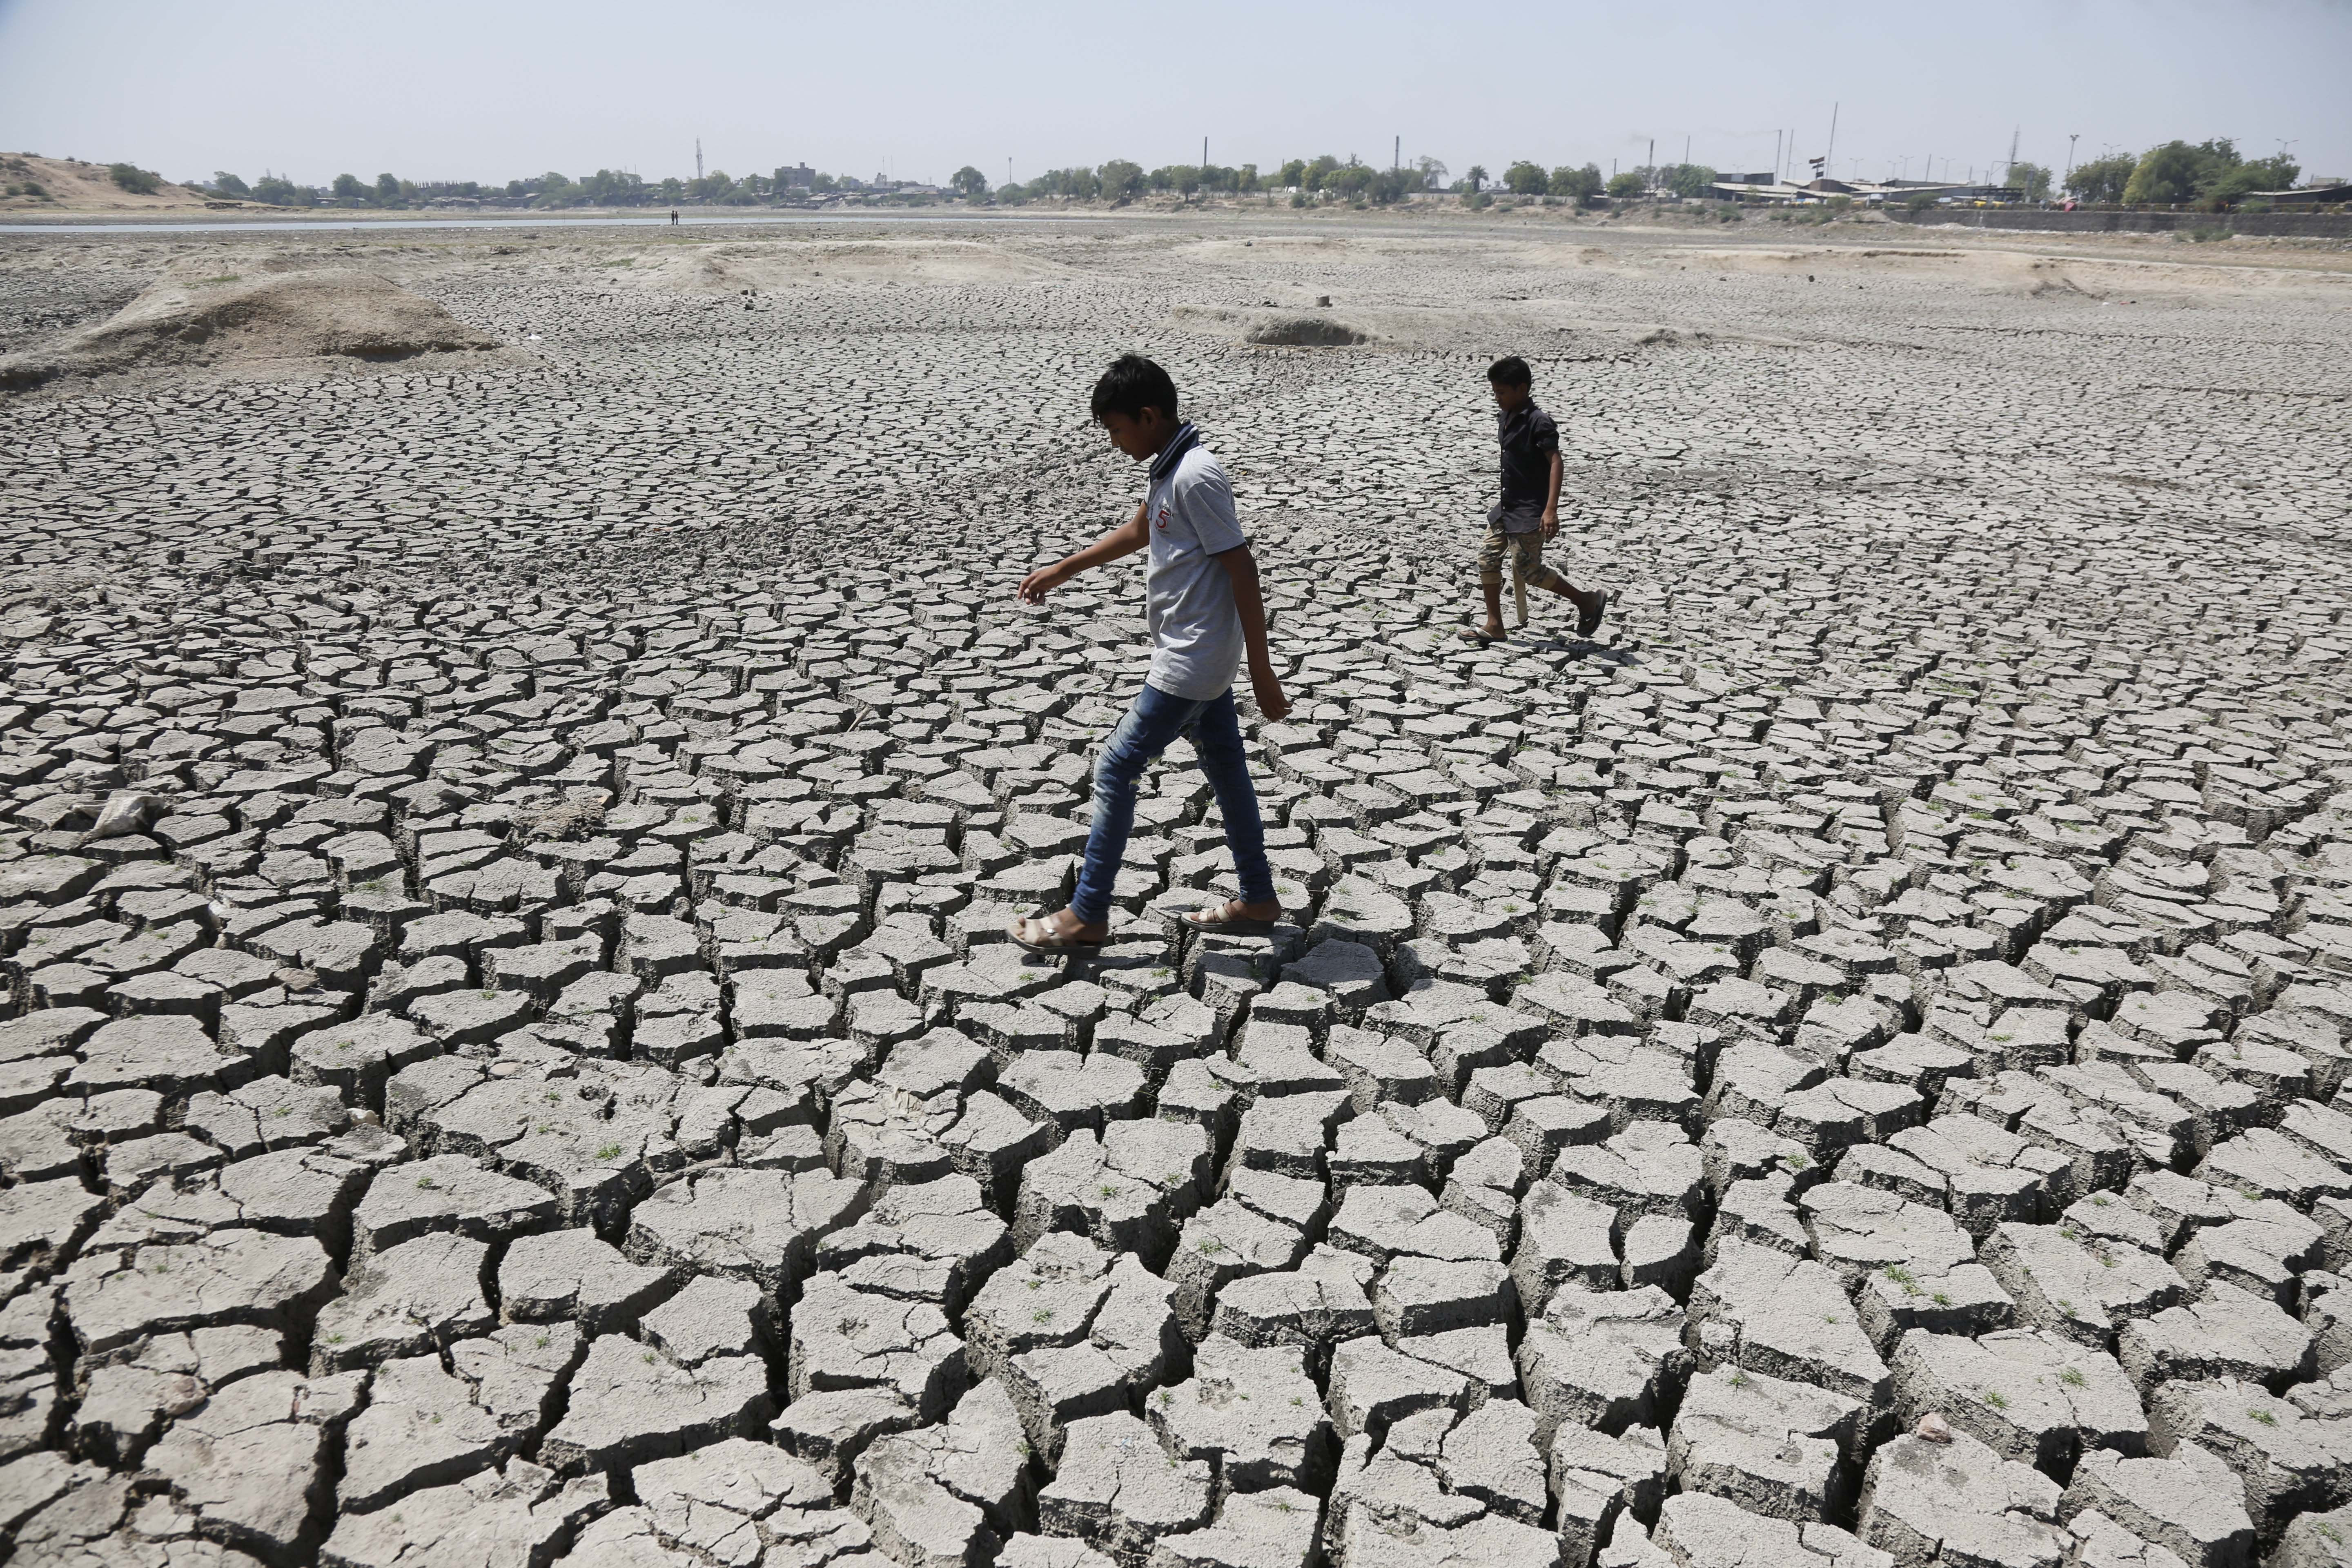 For richer, for poorer: Global warming has made the world's rich richer and the poor poorer, study says